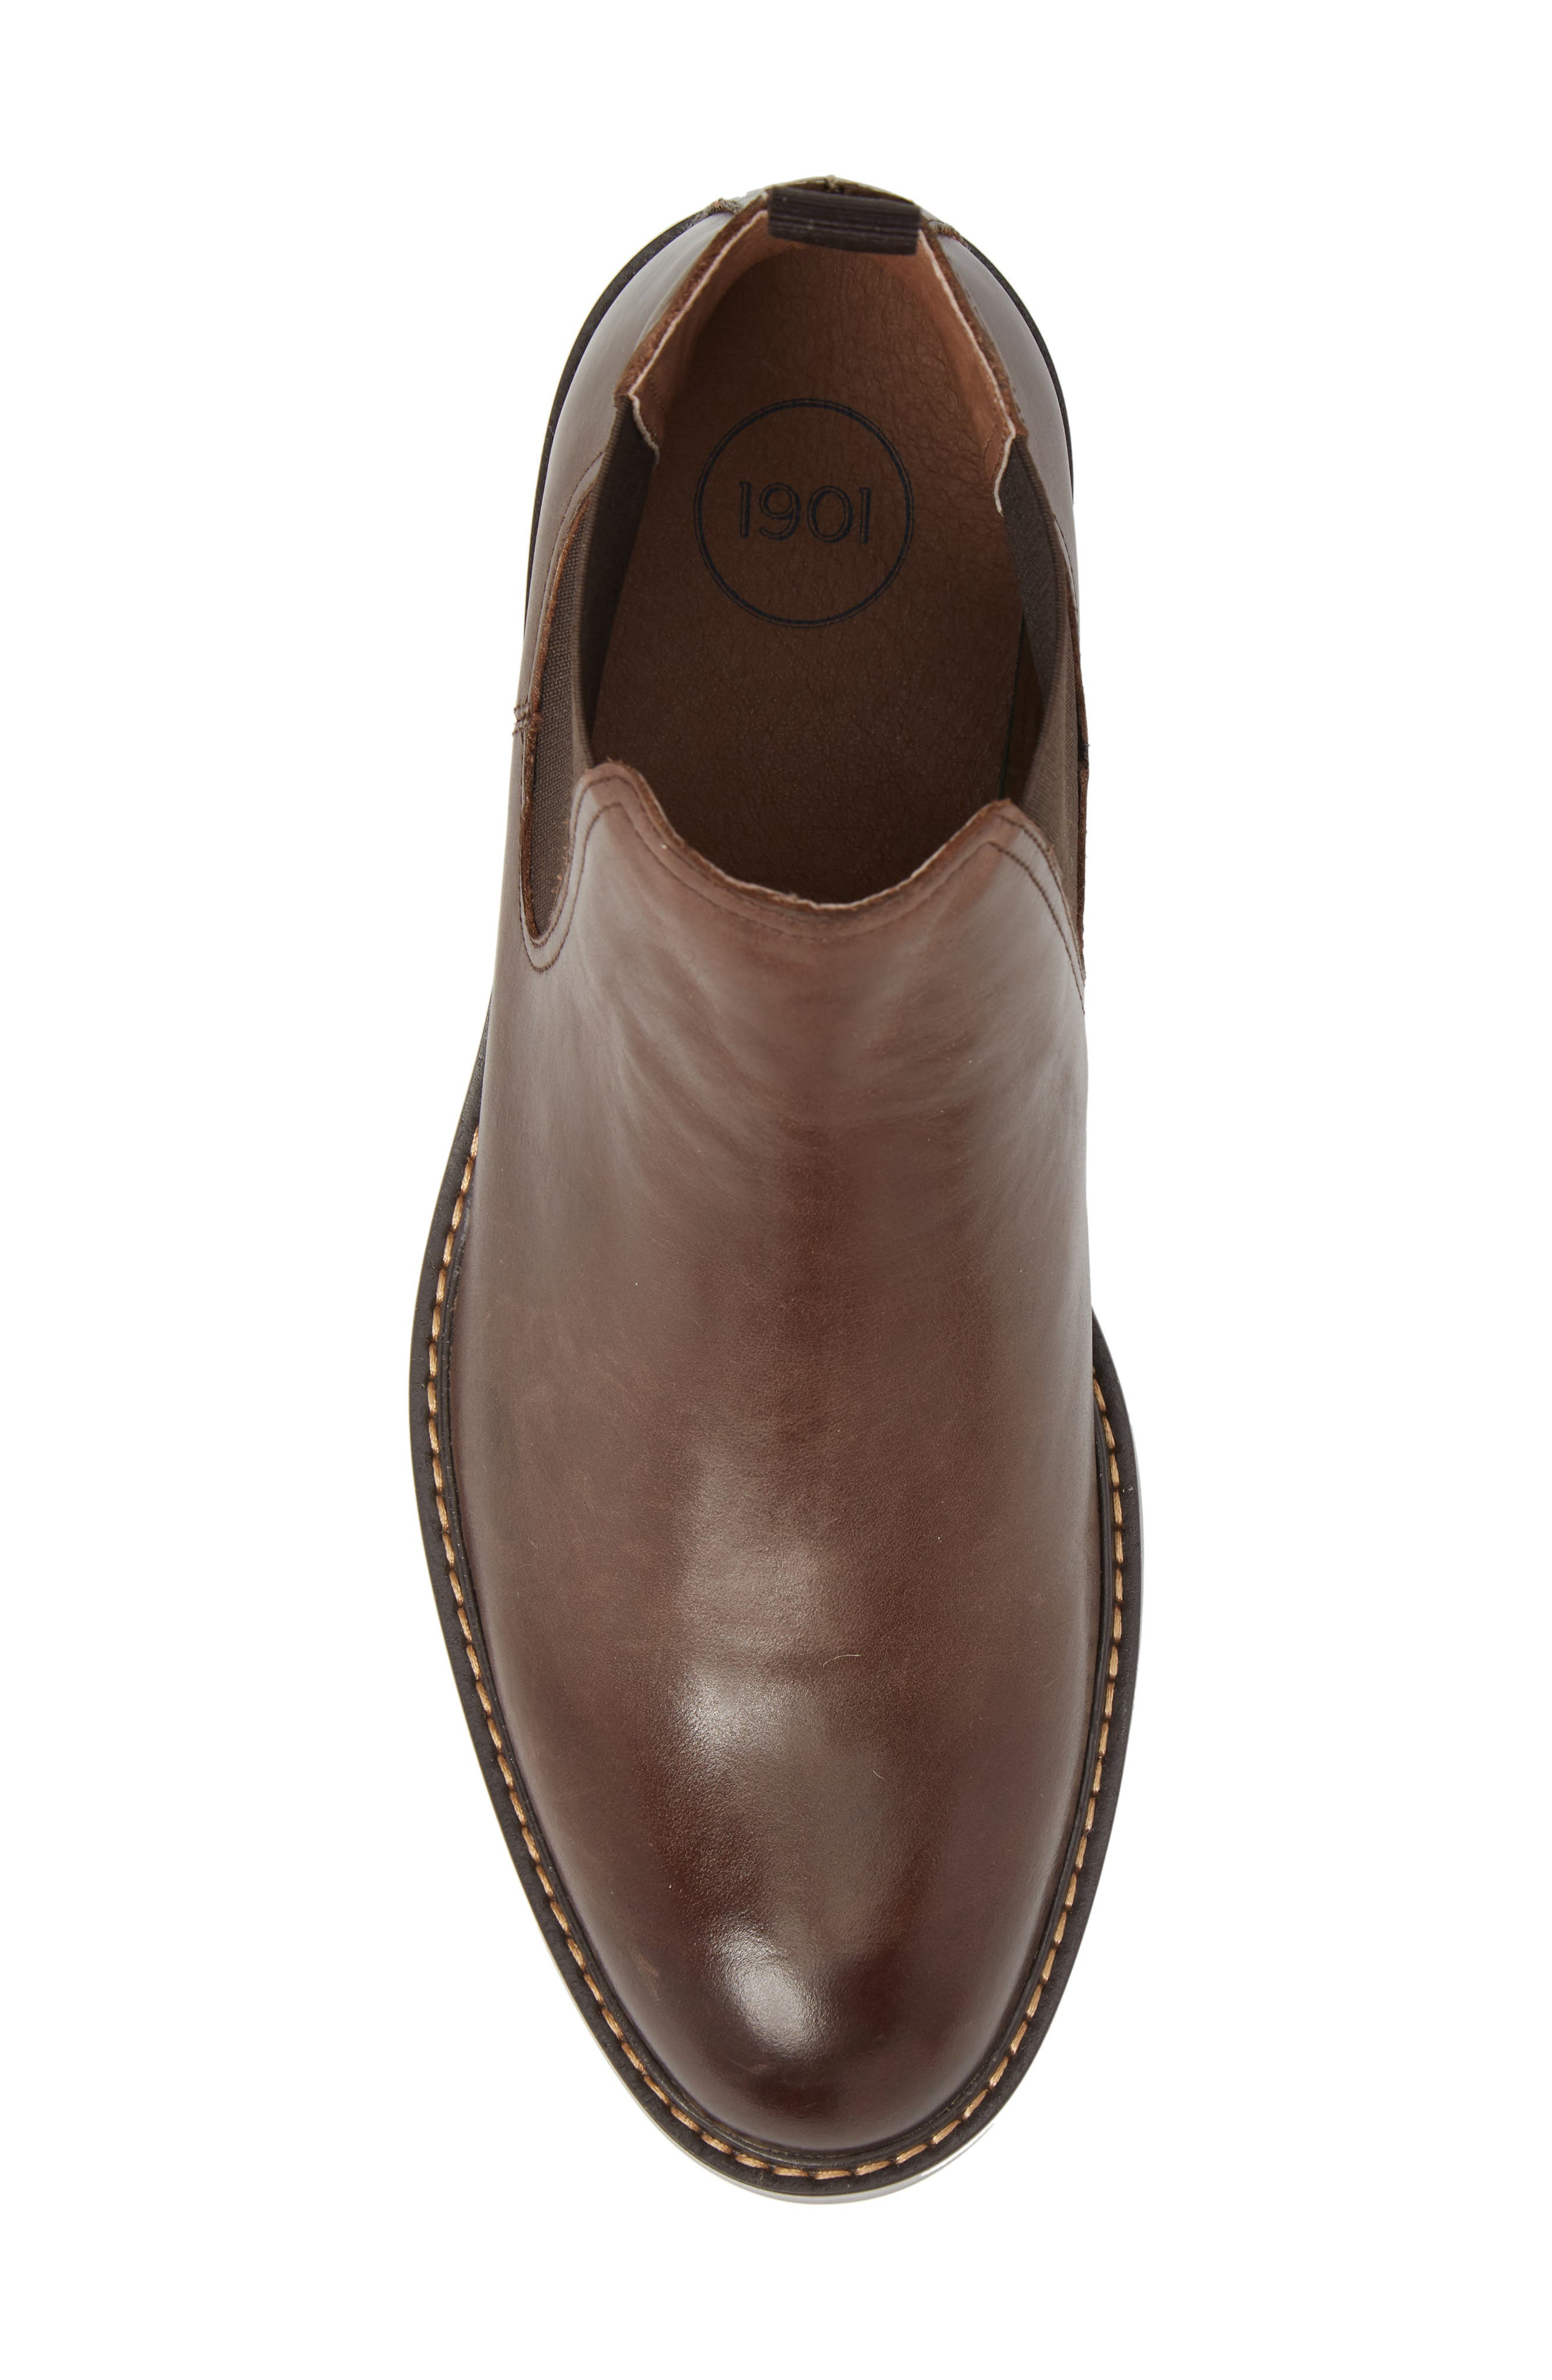 Brooks Chelsea Boot,                             Alternate thumbnail 5, color,                             BROWN LEATHER